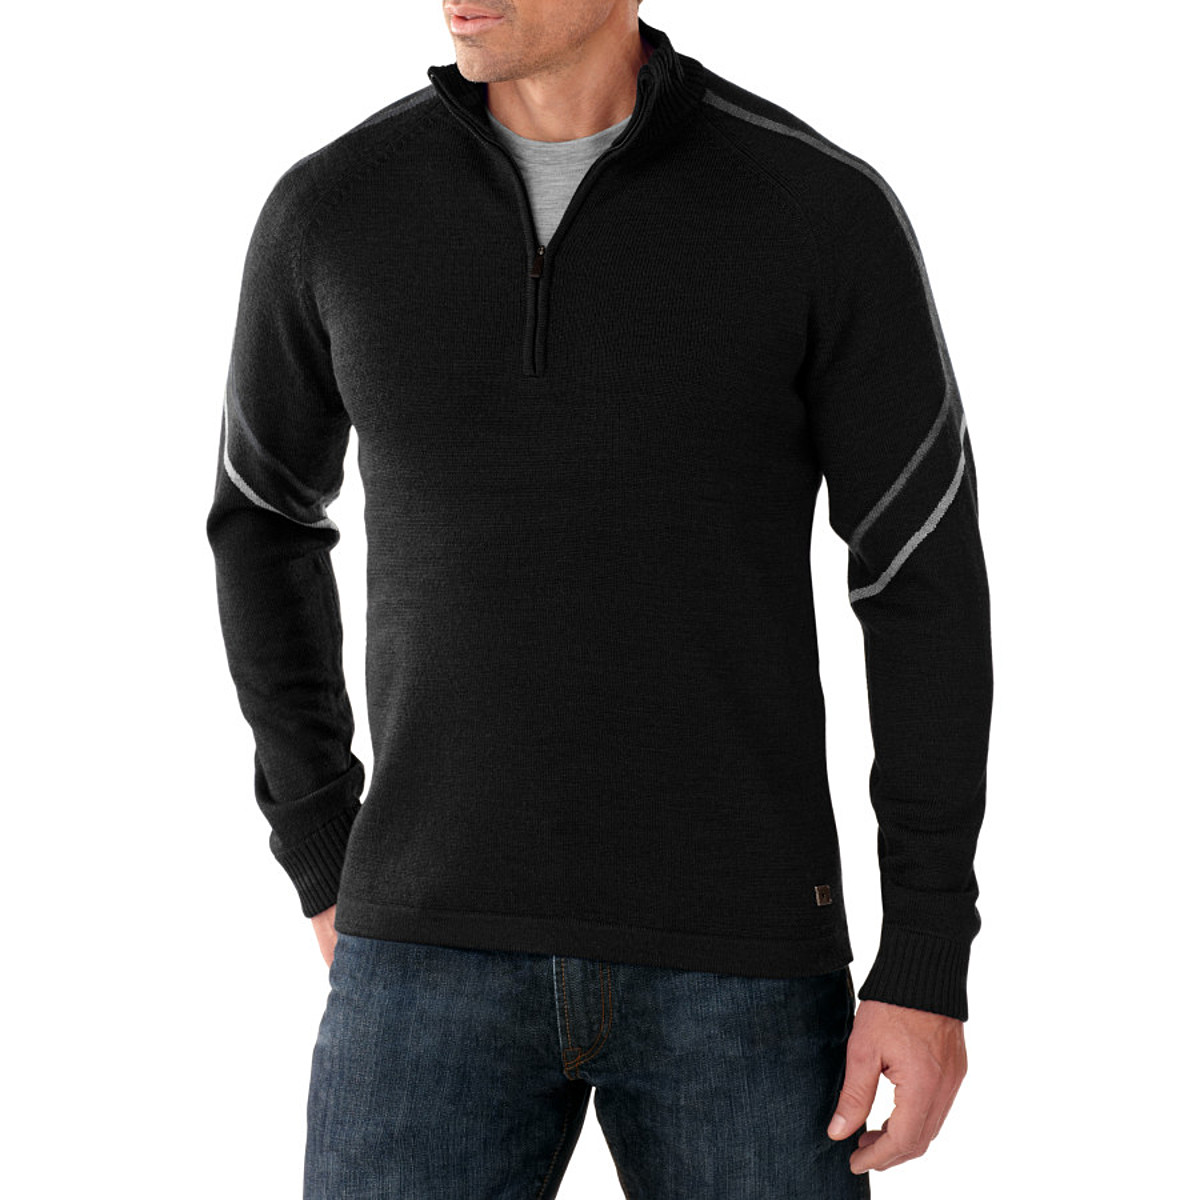 Smartwool Woodland Ranch Half-Zip Sweater